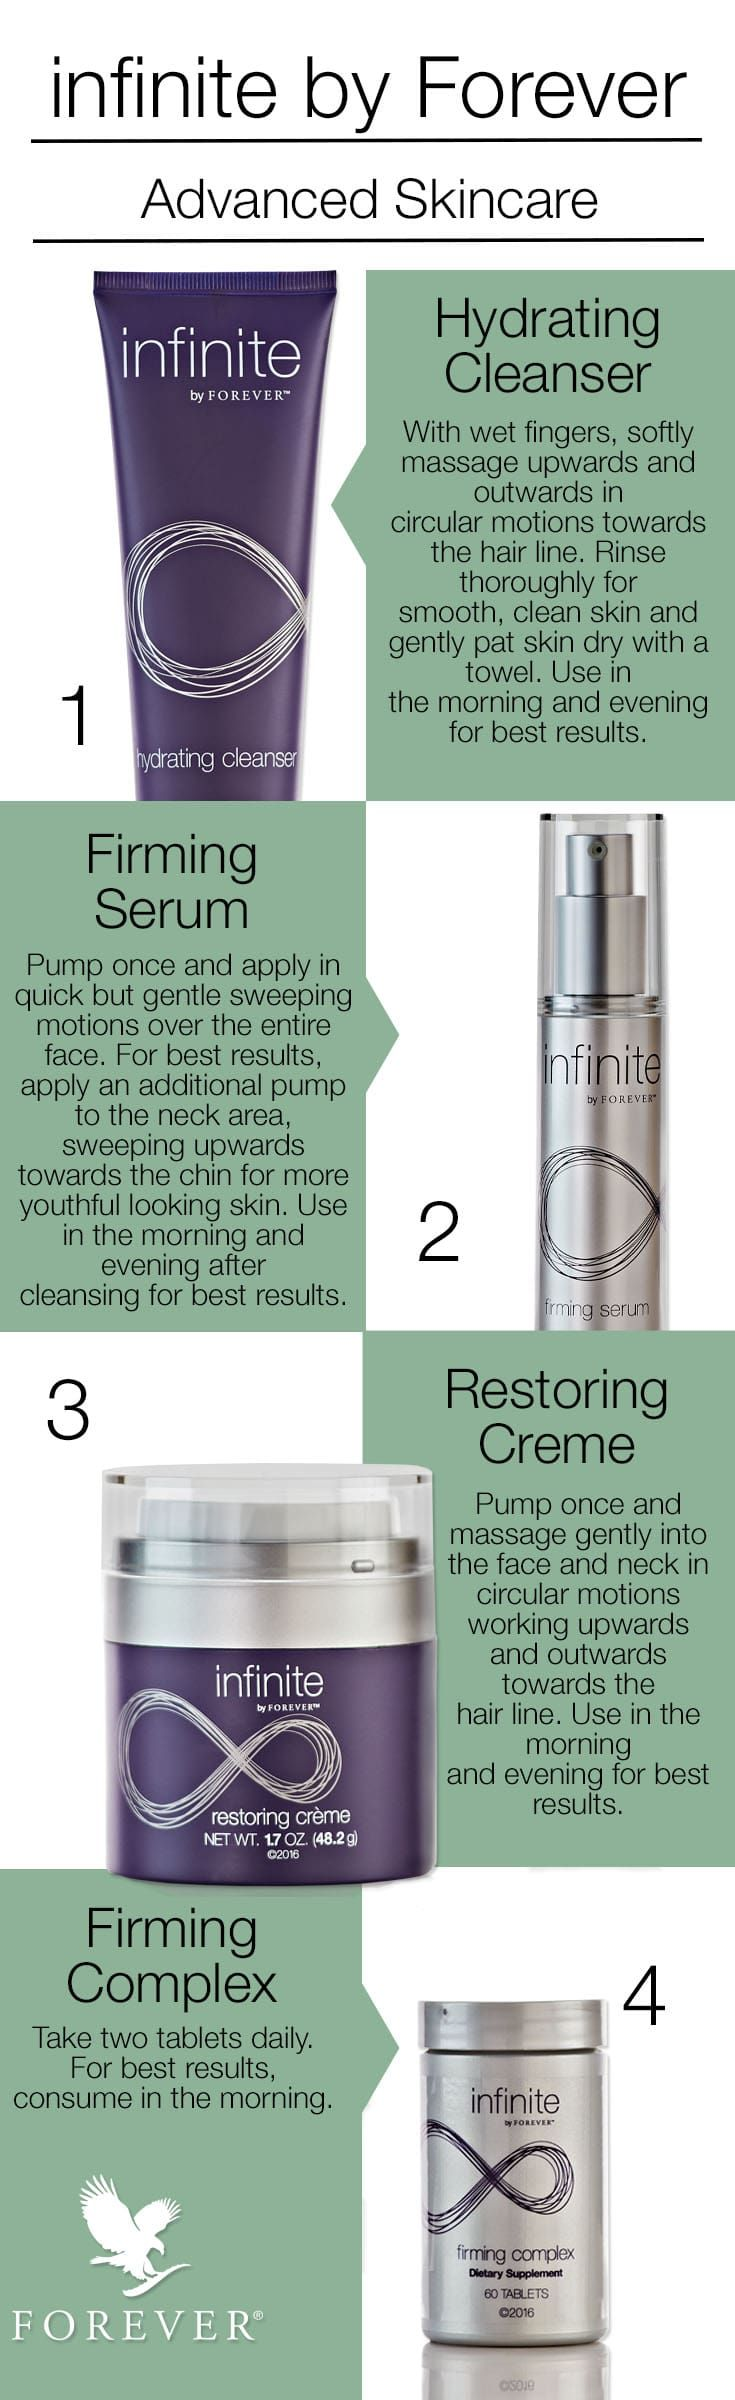 Infinite by Forever is a complete anti-aging skincare set for men and women. The set contains four products that work together perfectly: hydrating cleanser, firming serum, restoring crème and firming complex. This powerful skincare helps reduce the appea